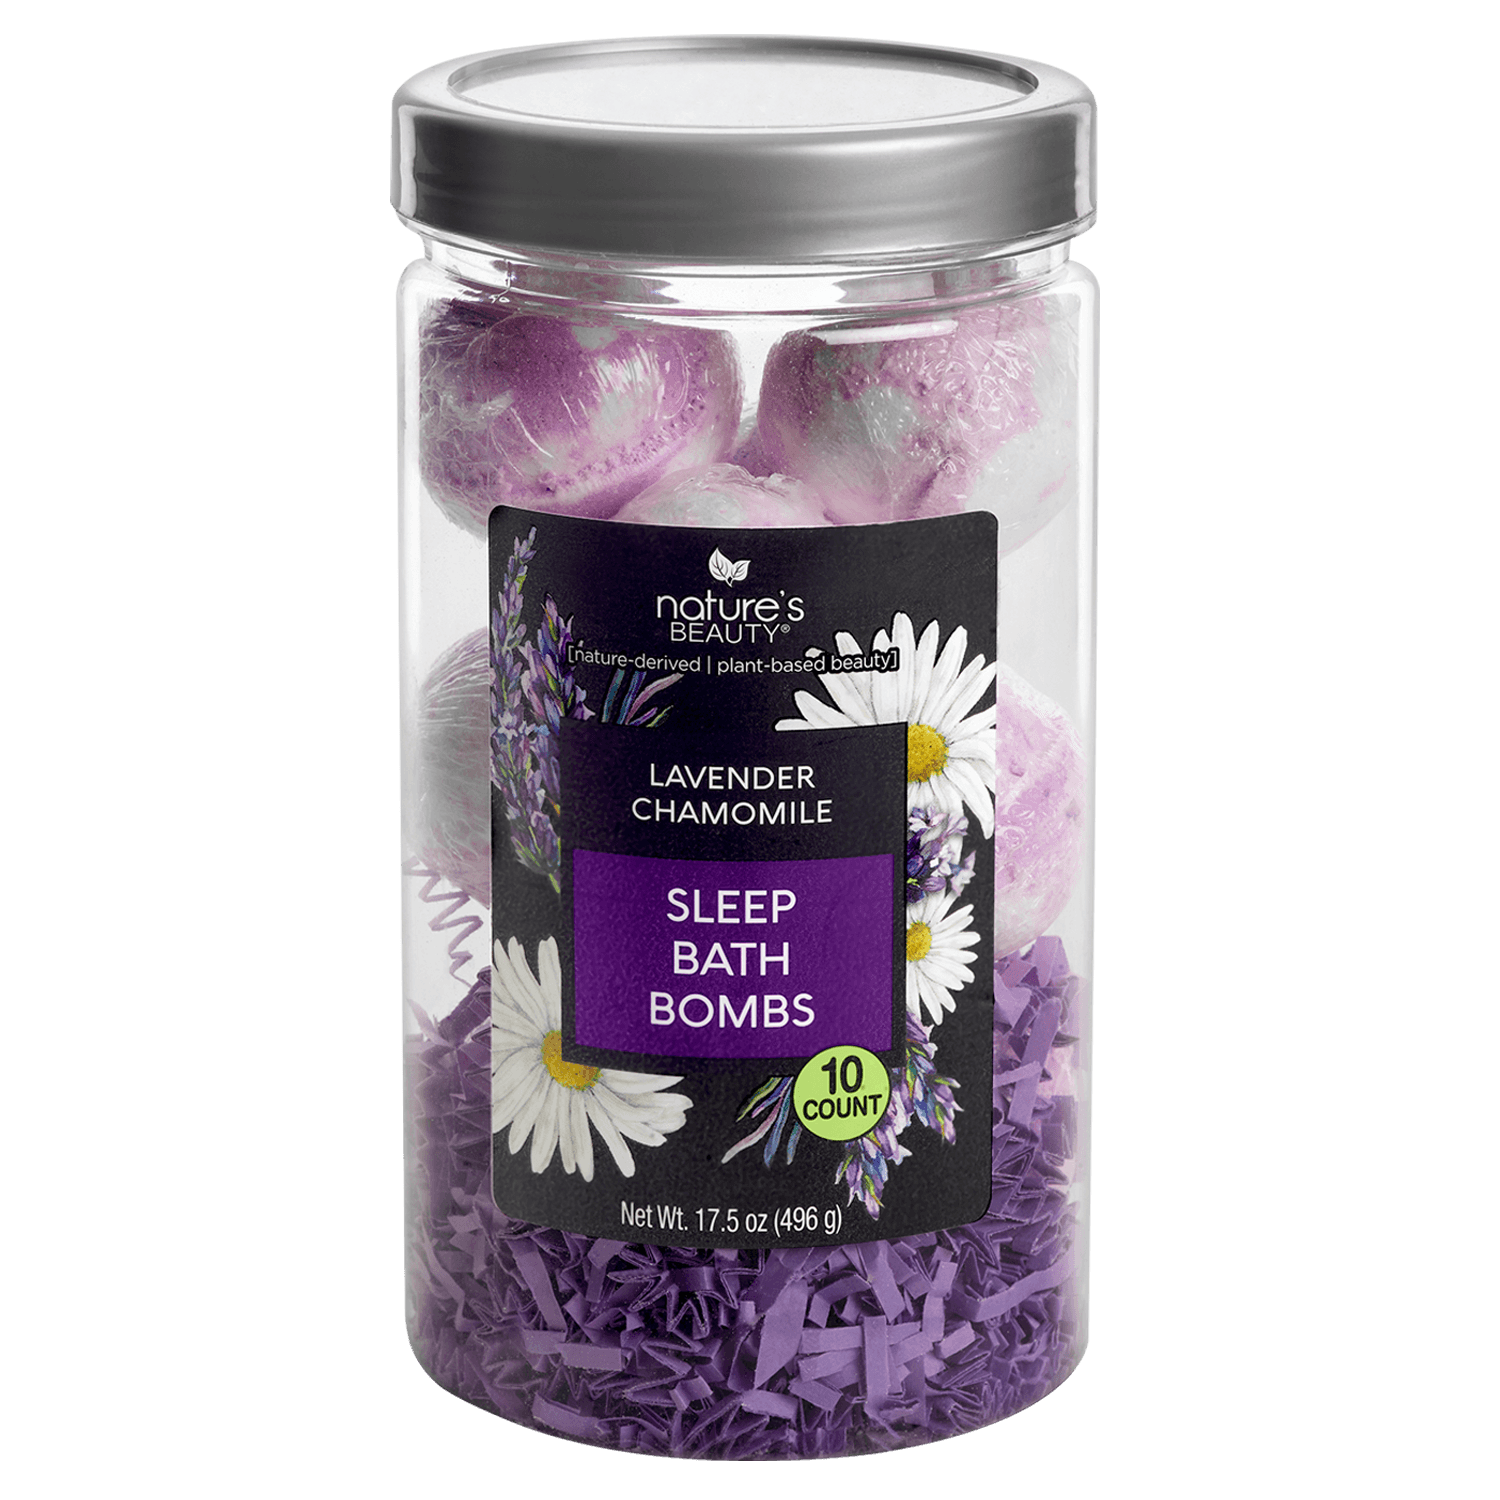 Lavender Chamomile Sleep Bath Bomb Gift Set